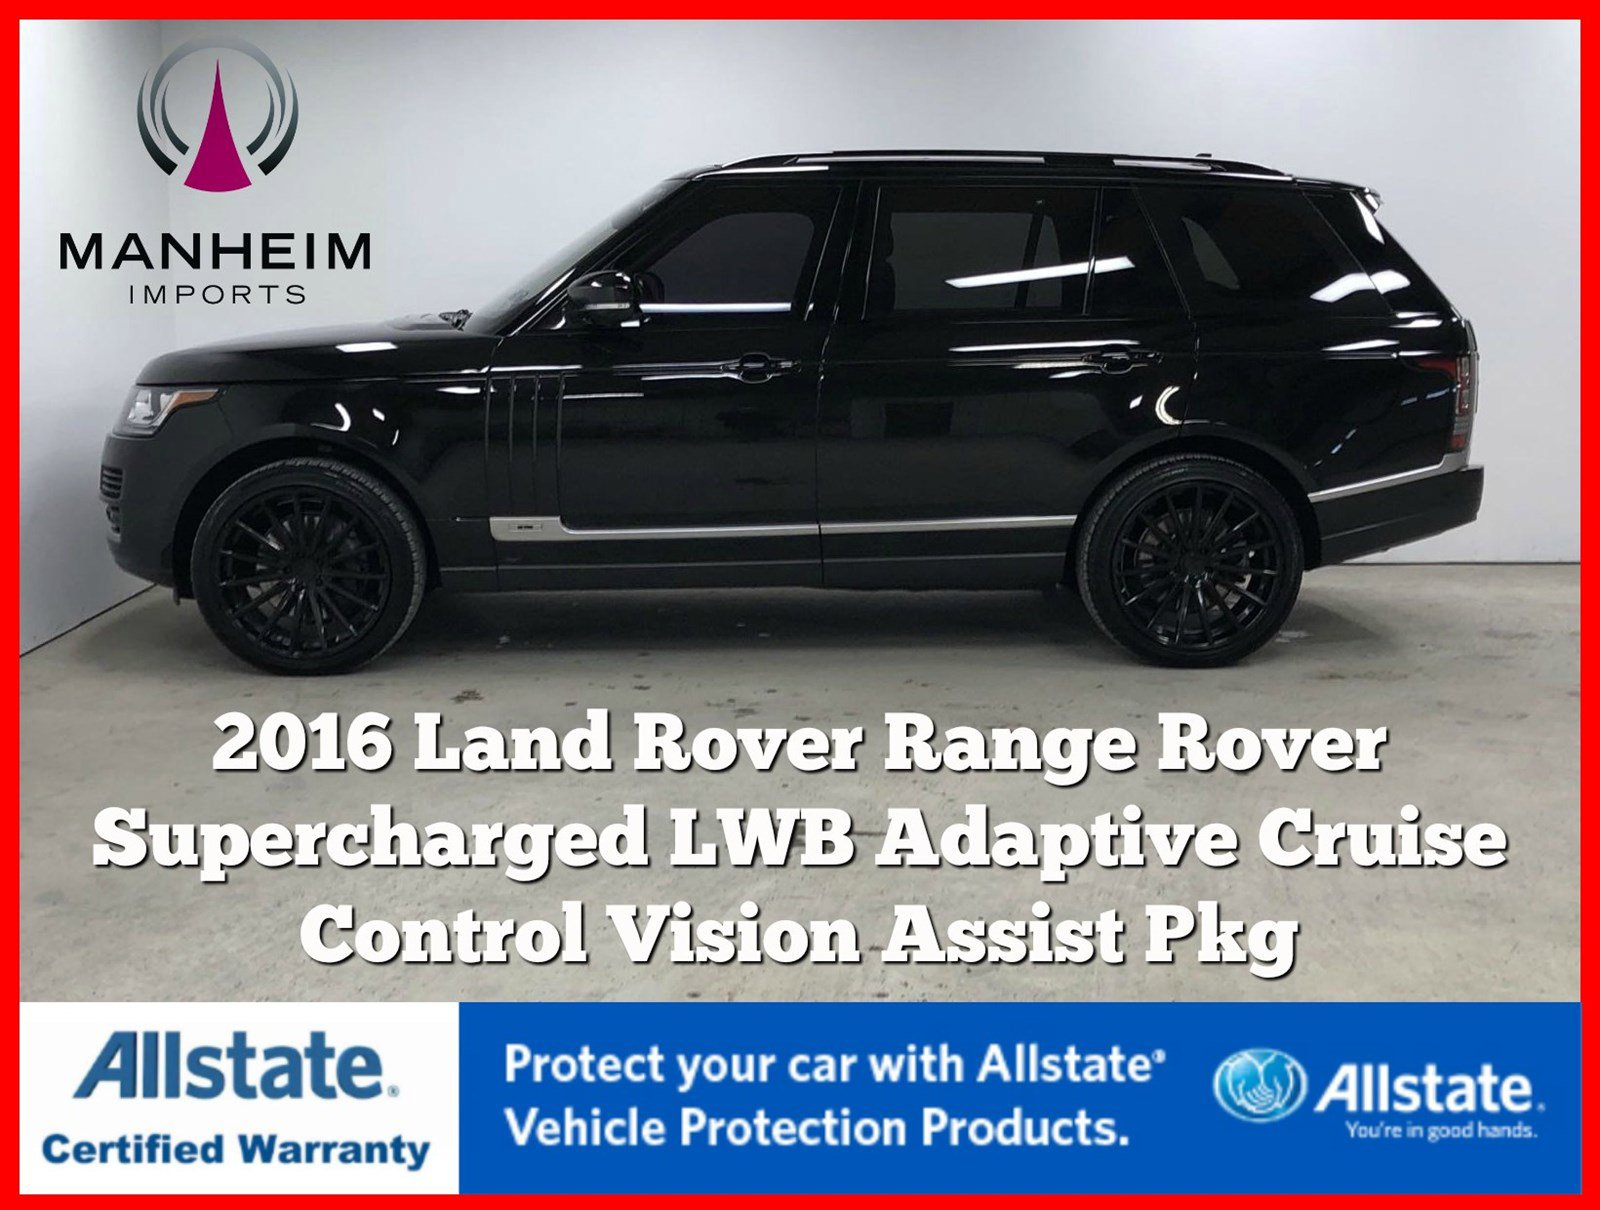 Pre-Owned 2016 Land Rover Range Rover Supercharged LWB